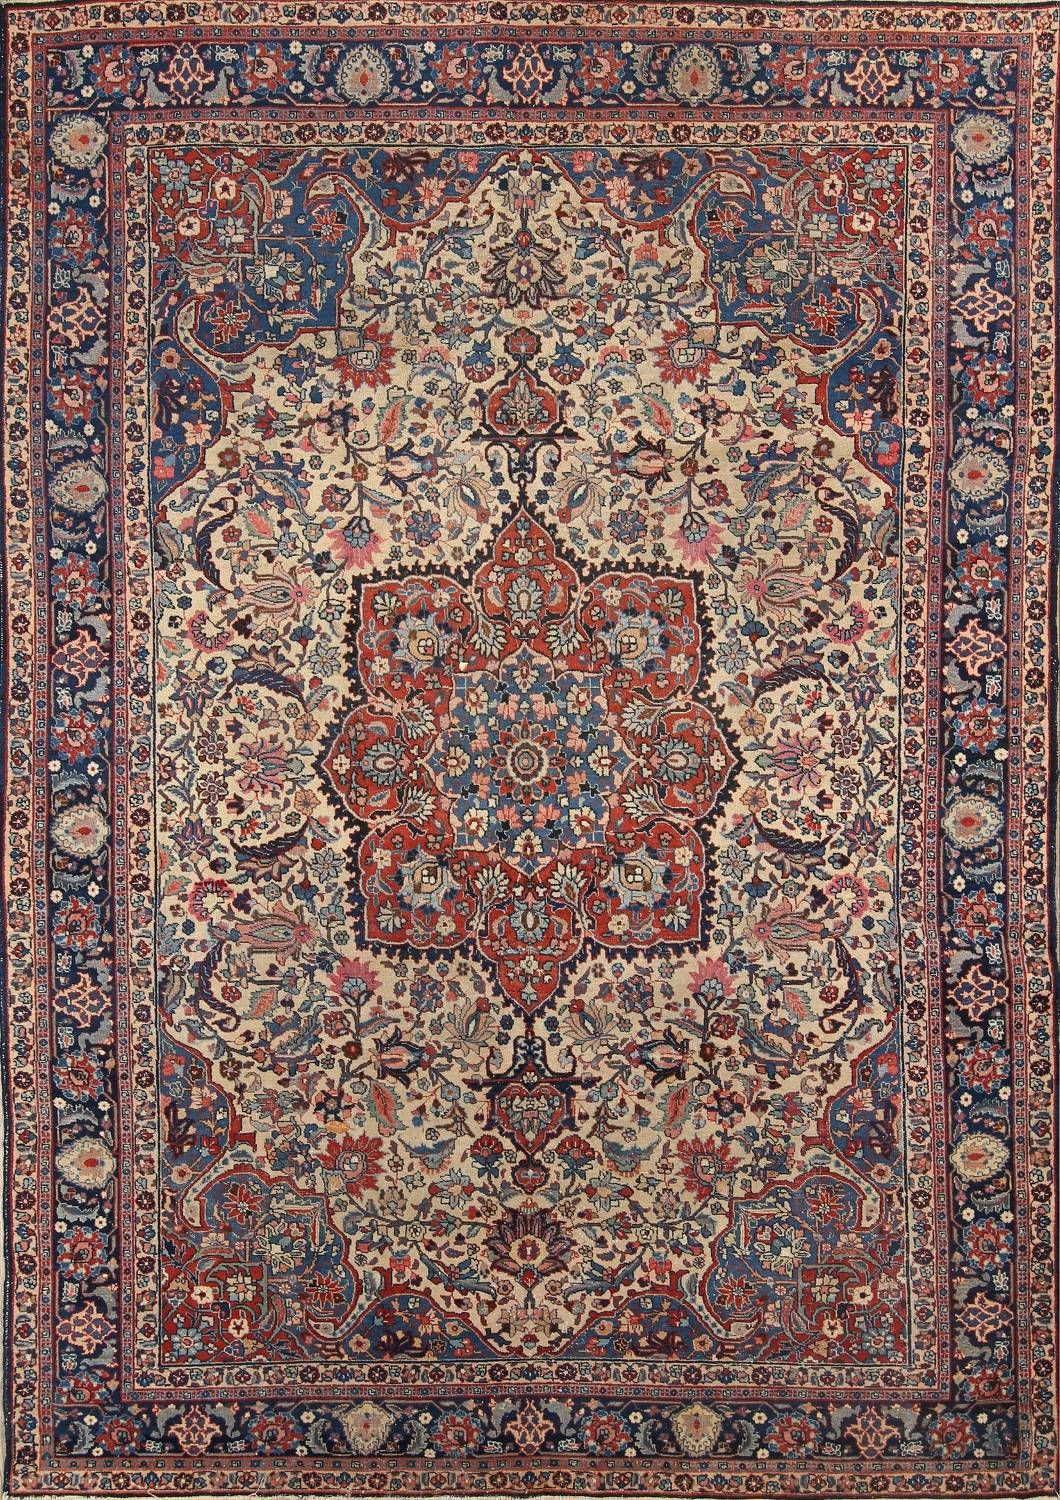 Antique Floral Khoy Tabriz Persian Area Rug 7x10 Persian Area Rugs Rugs On Carpet Persian Carpet